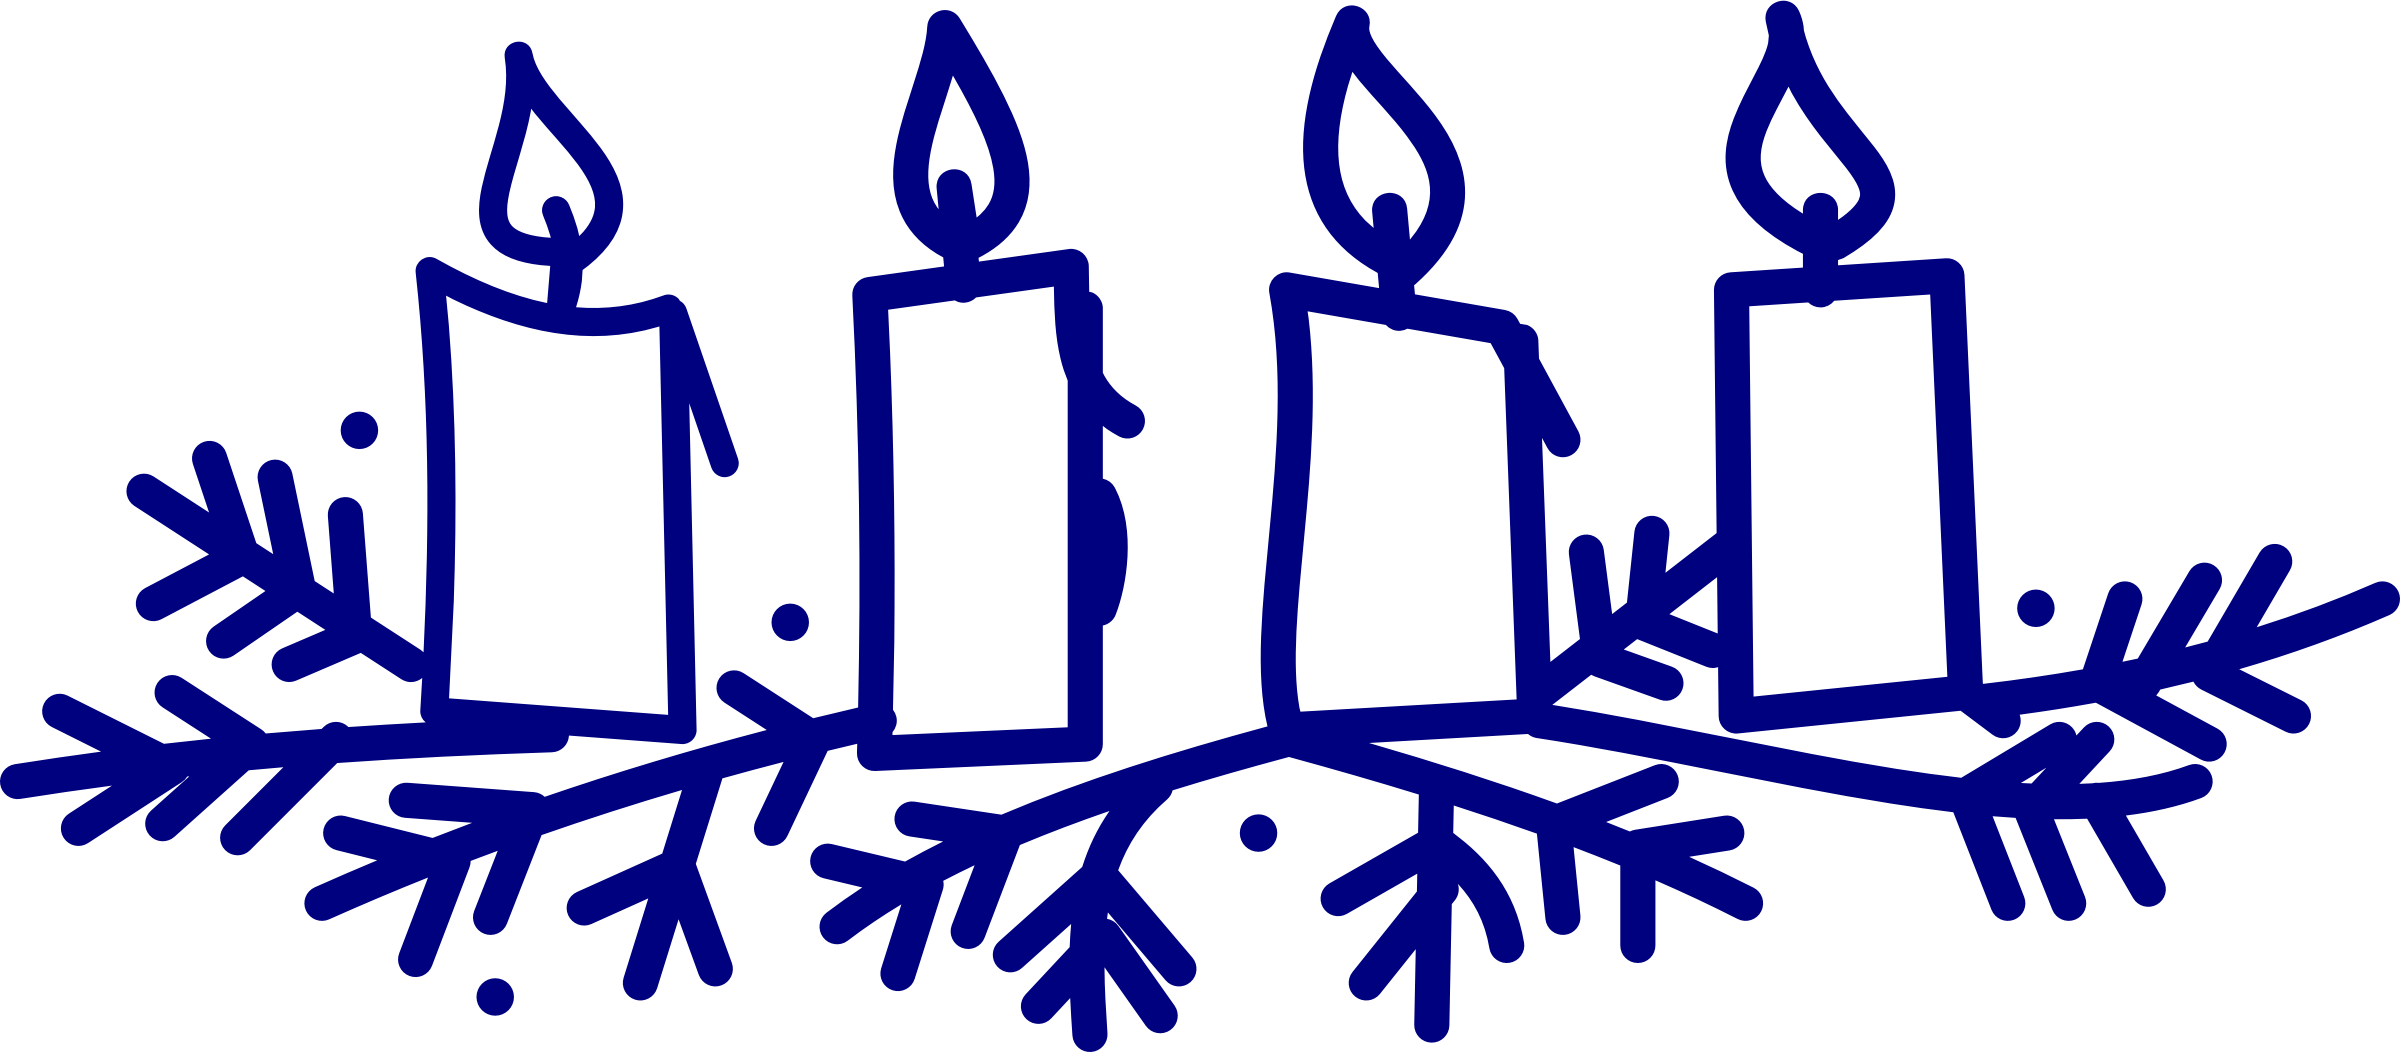 Clipart candle advent candle. Candles big image png